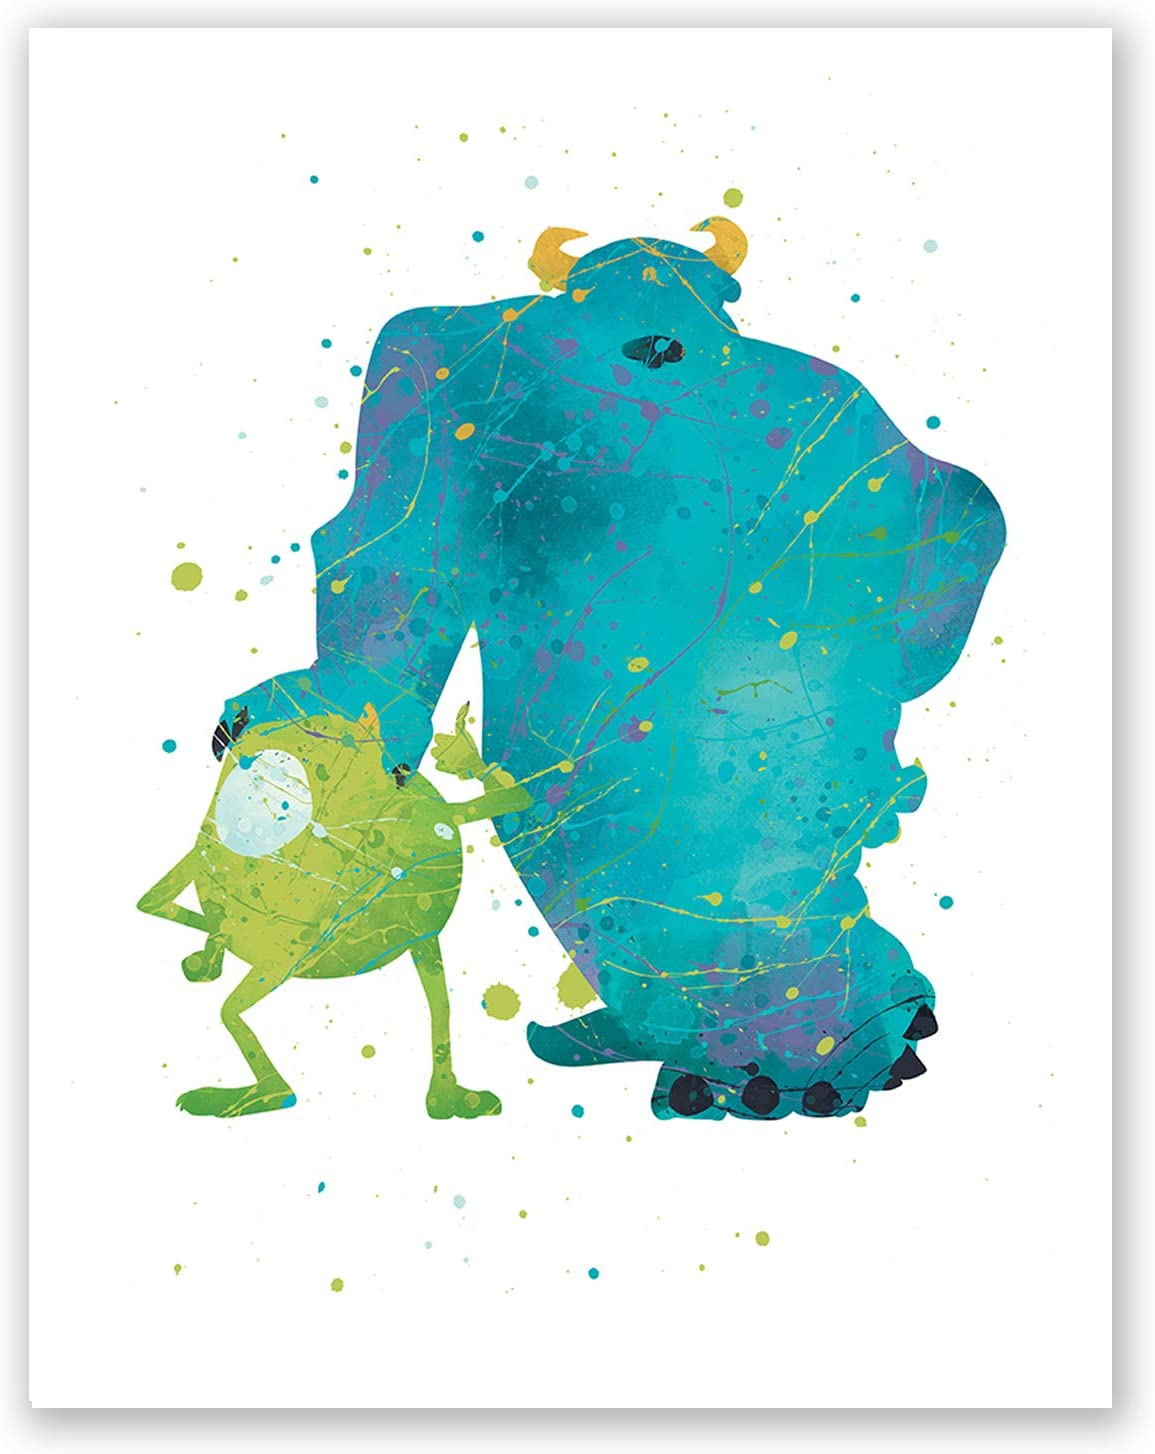 Amazon Com Pgbureau Monsters Inc Poster Sully And Mike Wazowski Wall Art Print Party Birthday Decoration Watercolor Artwork Illustration Kids Room Nursery Home Decor 8x10 Posters Prints